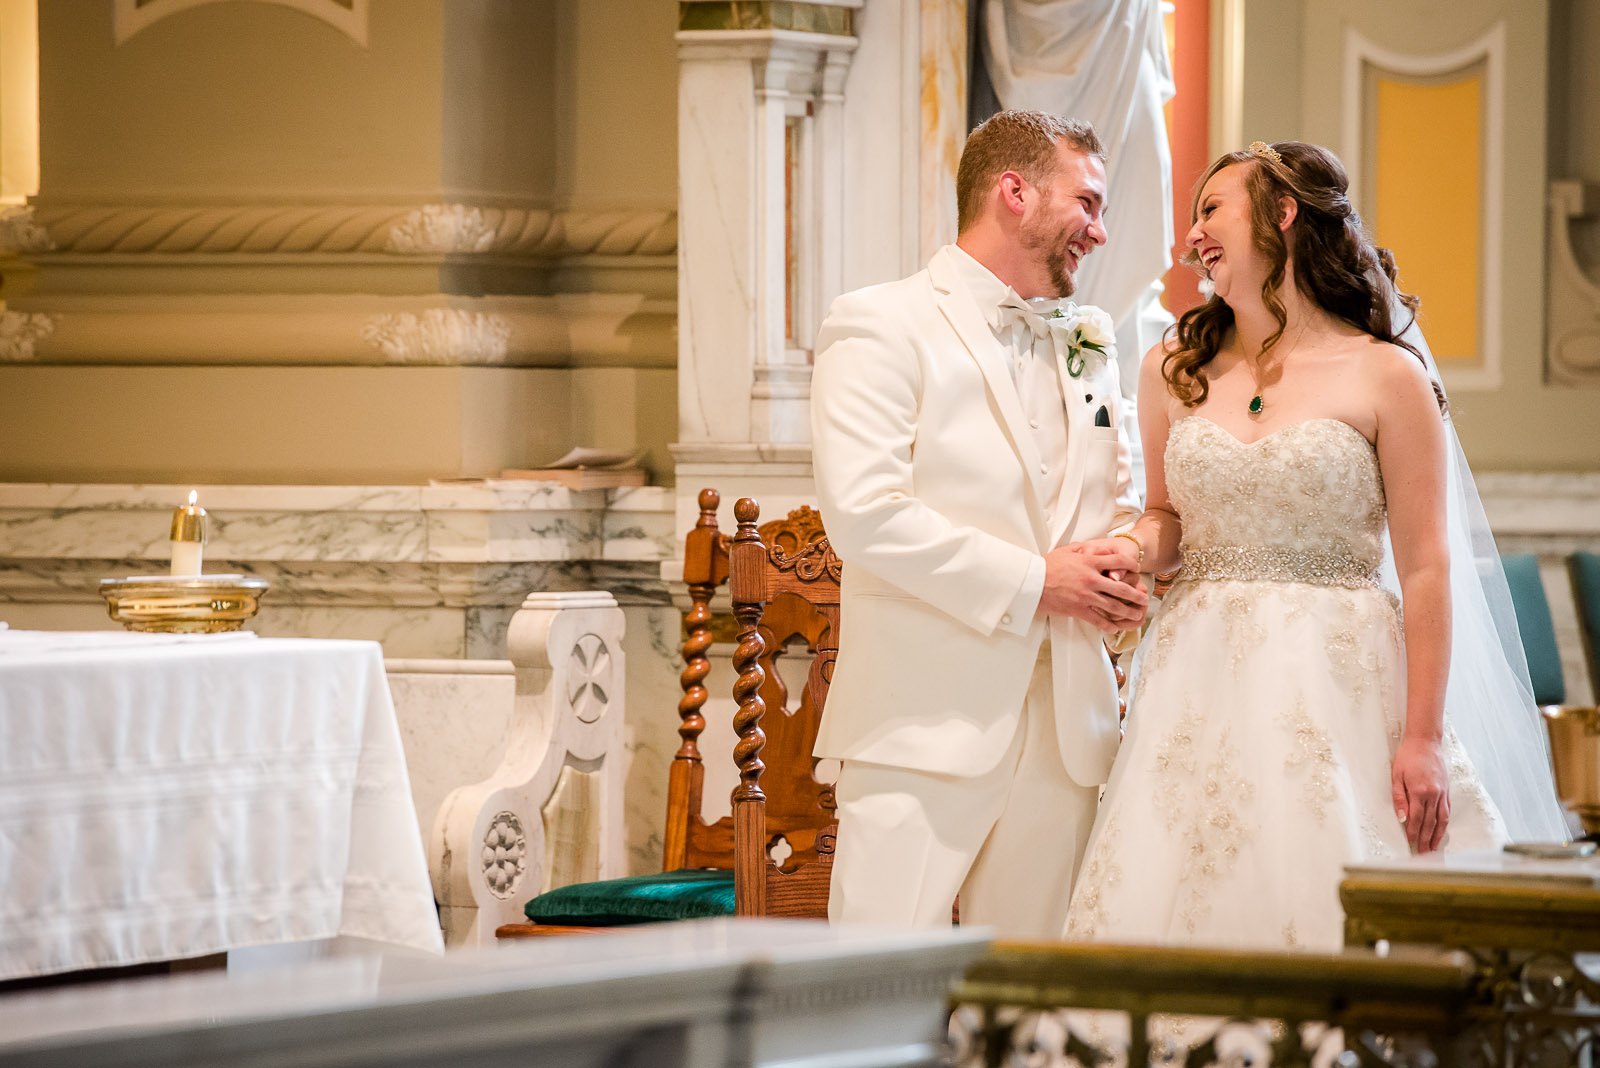 Eric_and_Christy_Photography_Blog_Wedding_Eva_Andrew-10